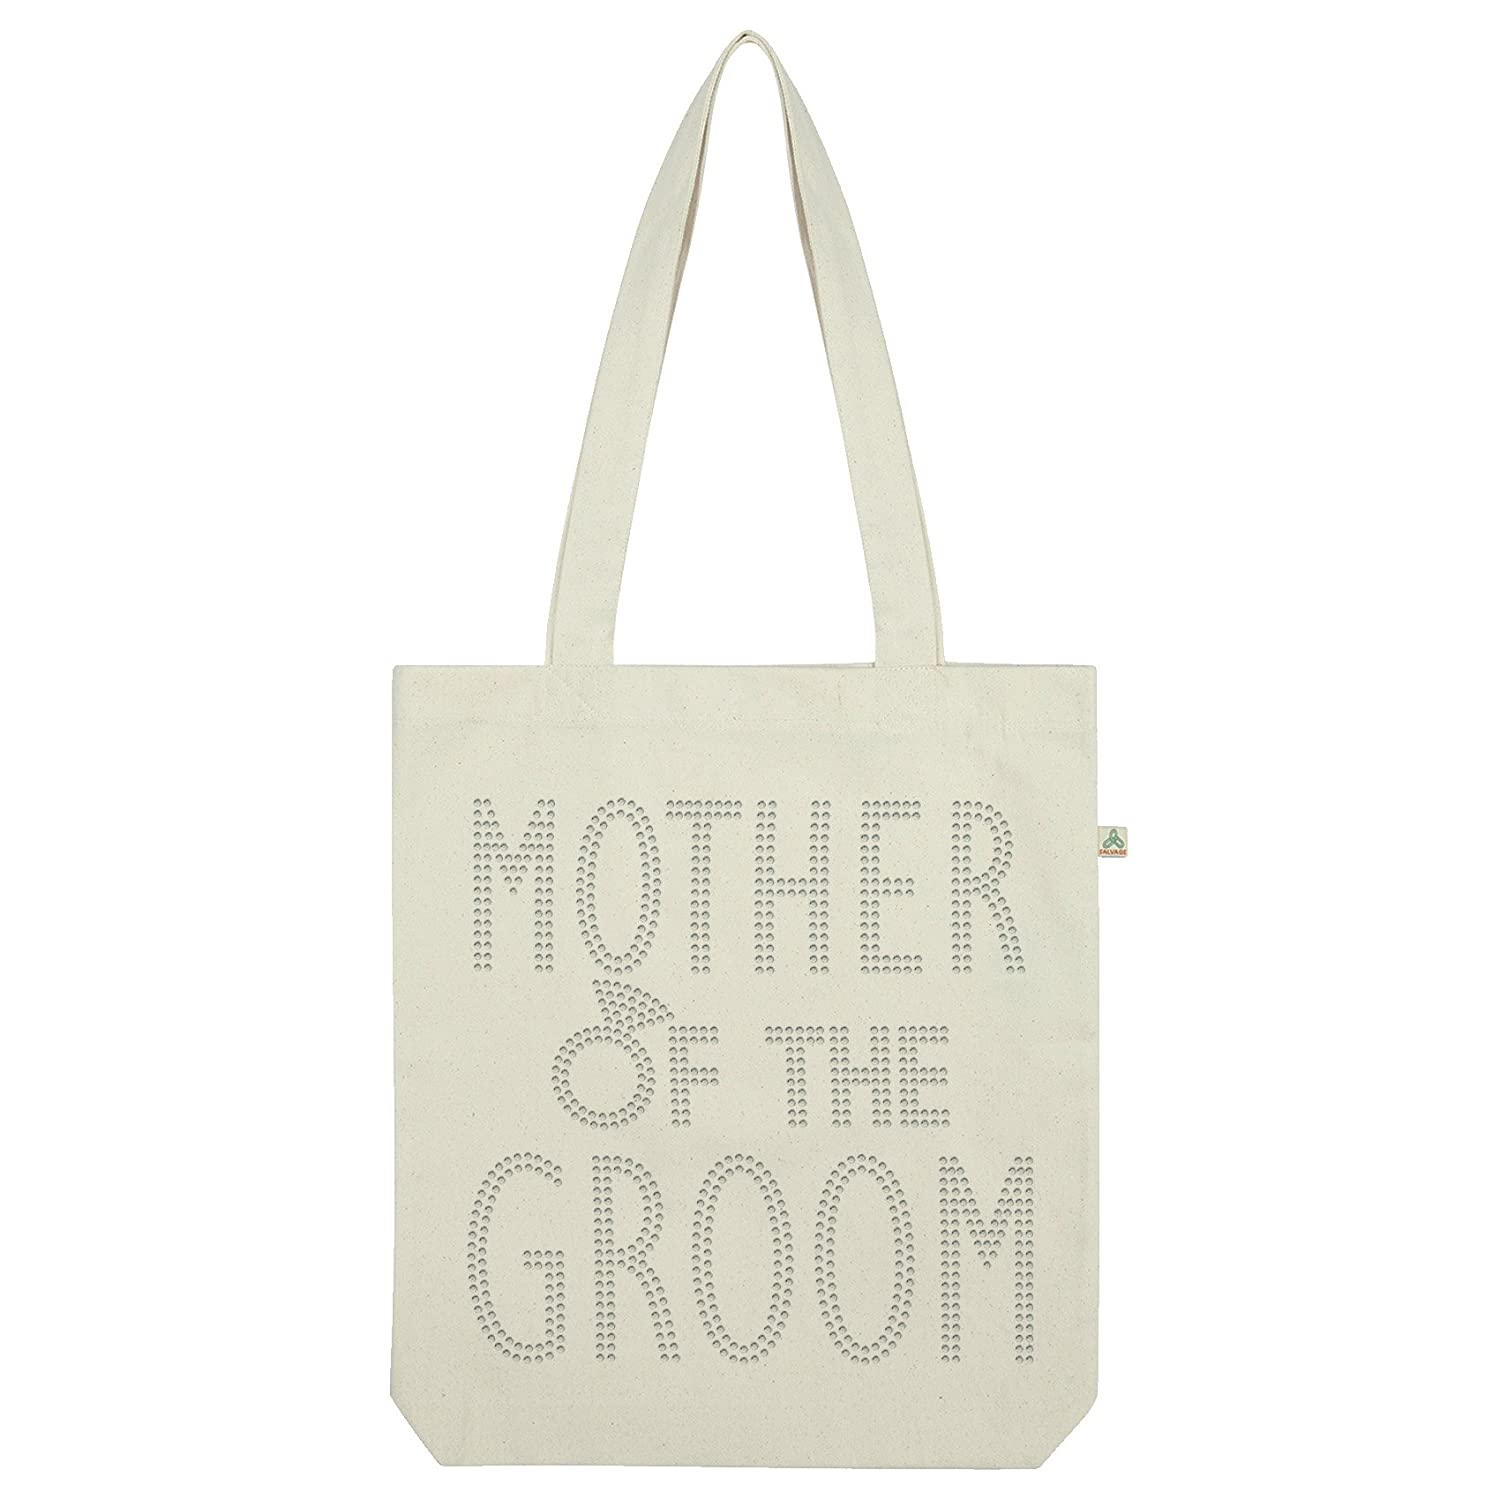 Twisted Envy Mother Of The Groomラインストーントートバッグ ホワイト TOTEBAG-MD24950-WHT B01ITFSDYC  ホワイト